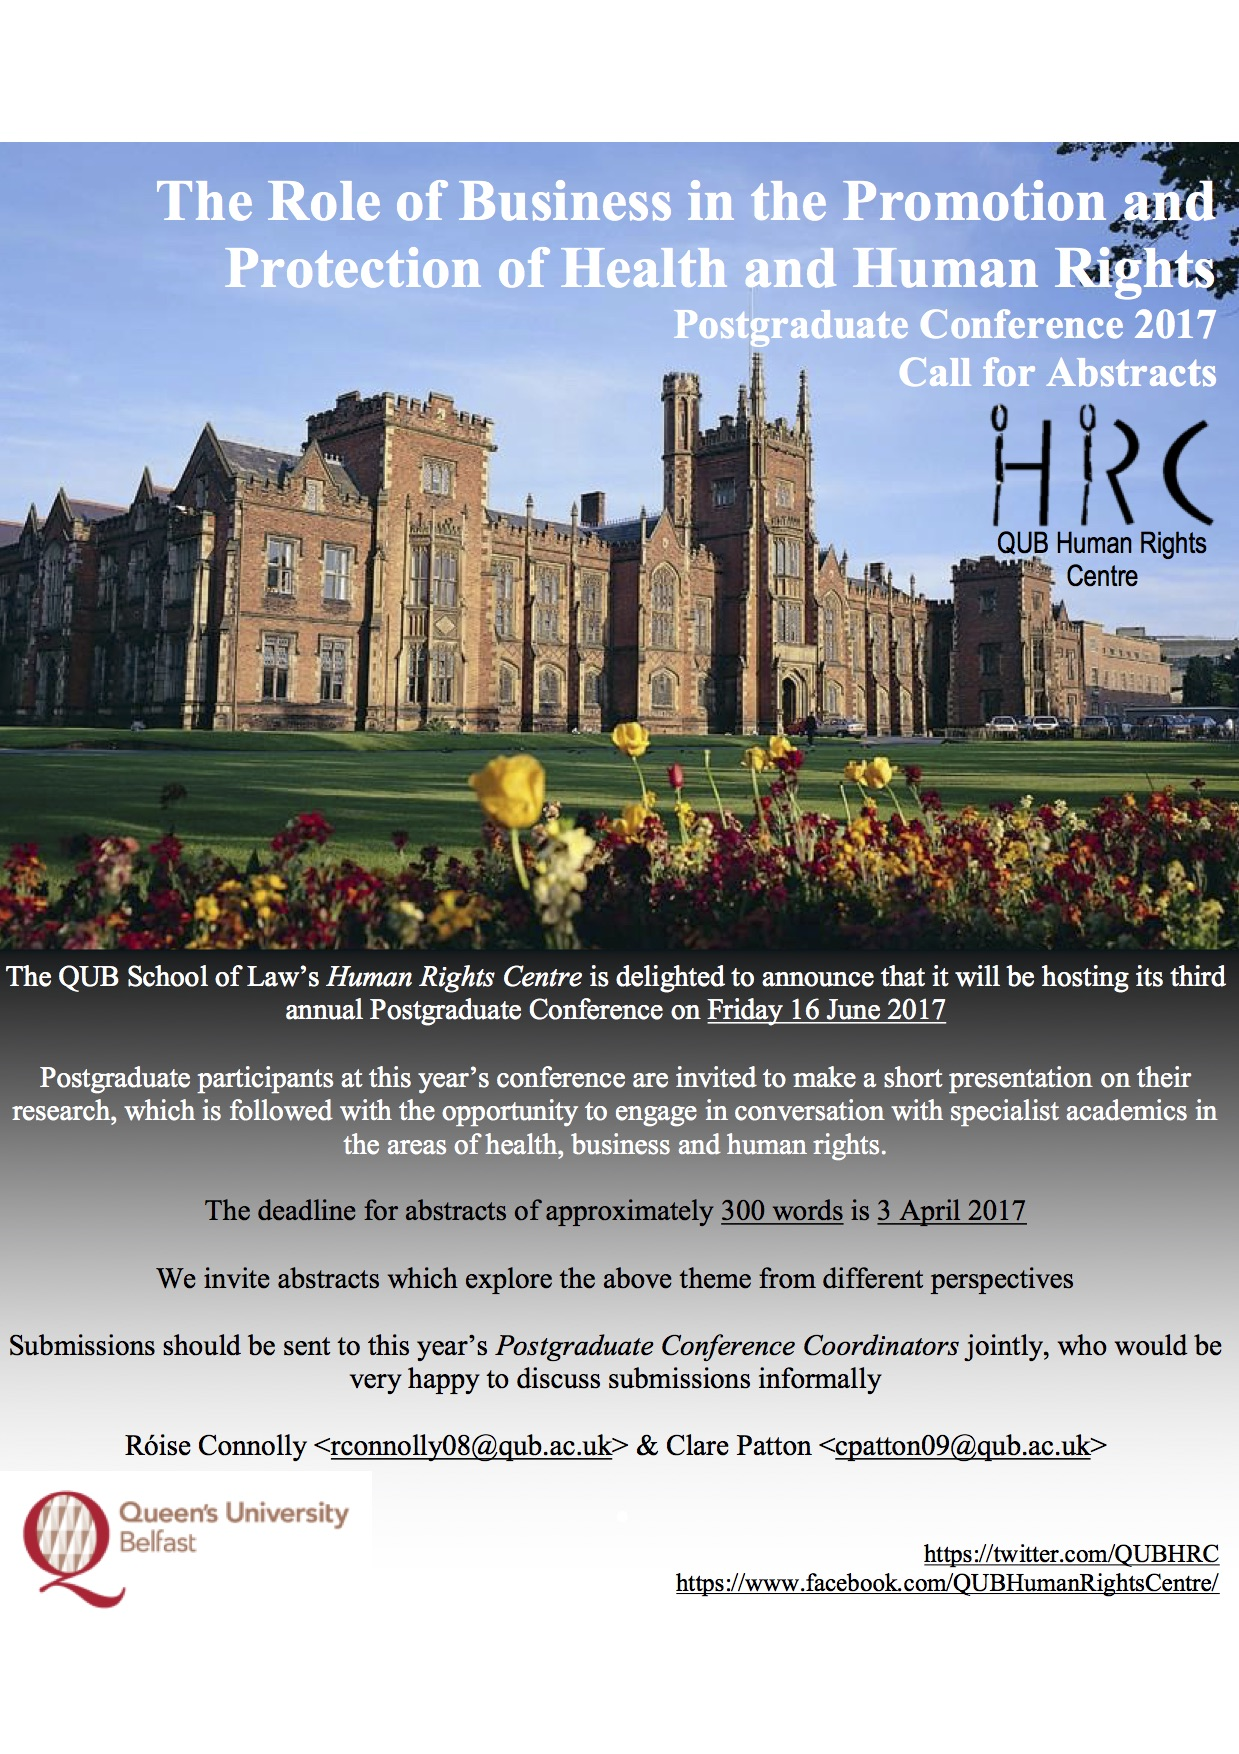 Call for Abstracts: The Role of Business in the Promotion and Protection of Health and Human Rights